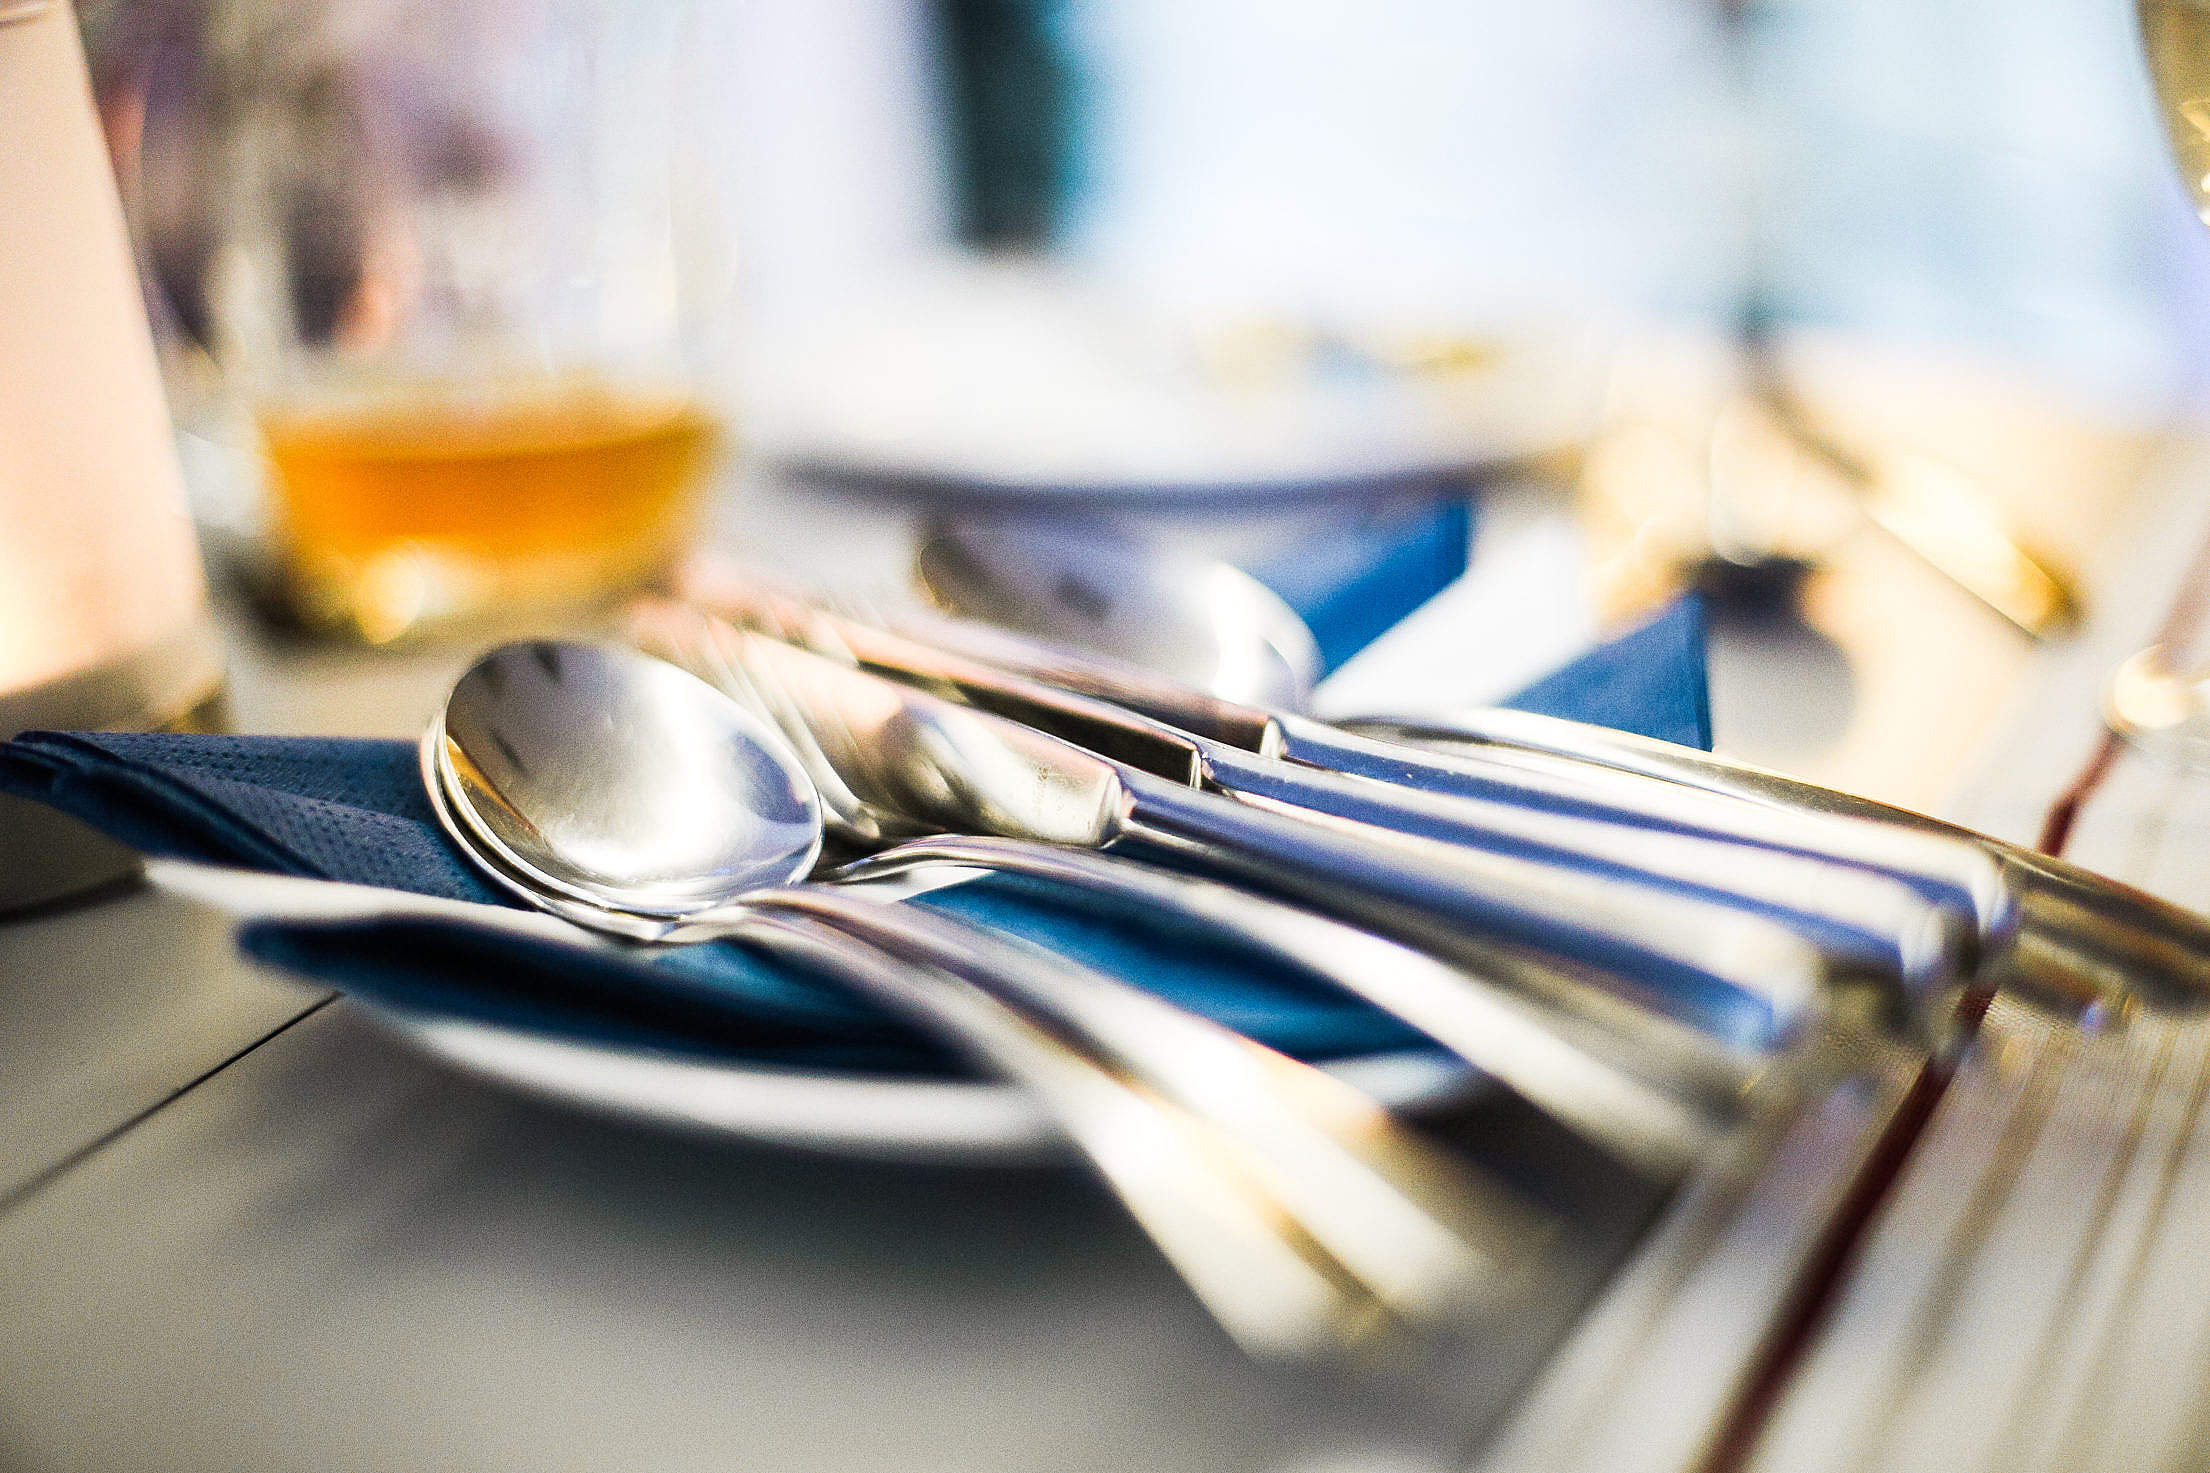 Restaurant Cutlery Free Stock Photo